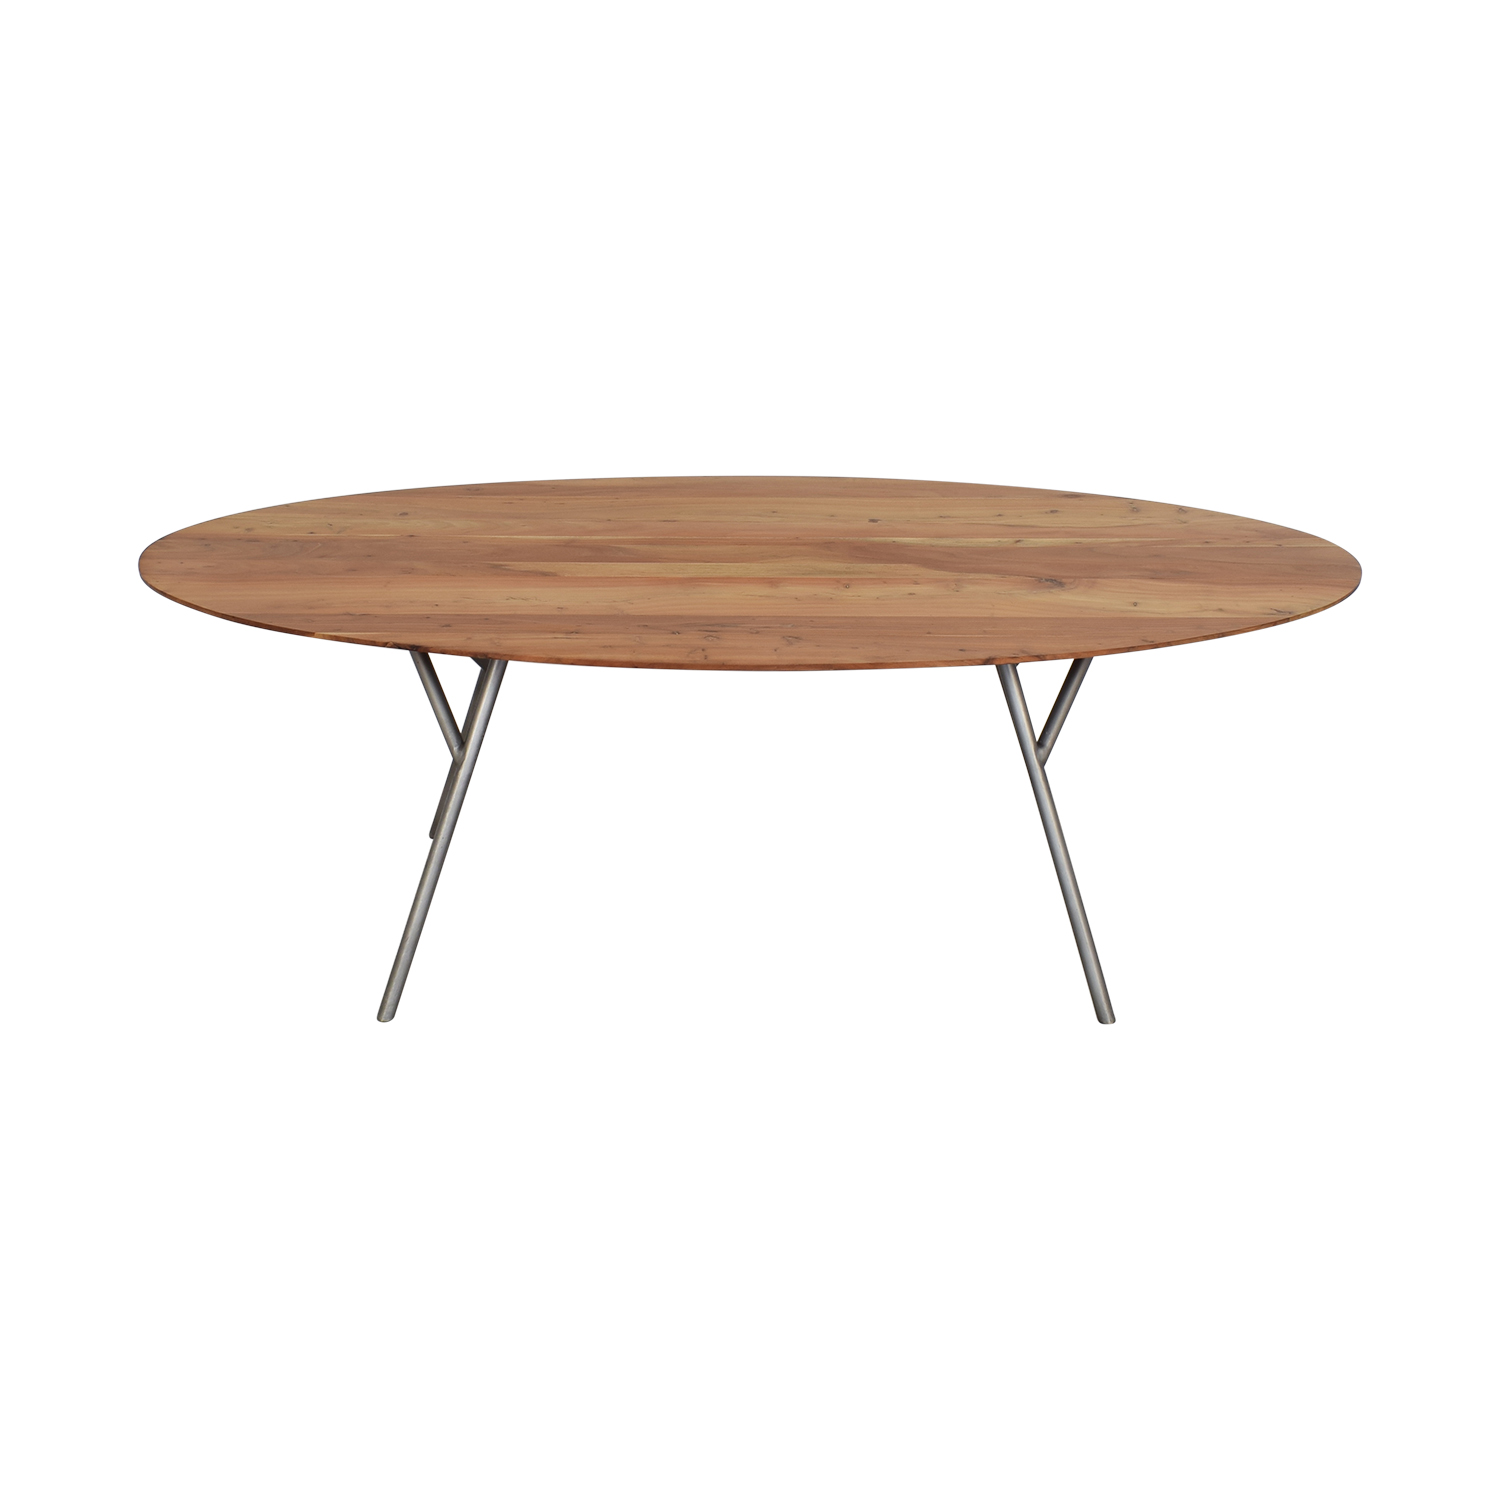 CB2 Oval Dining Table / Tables